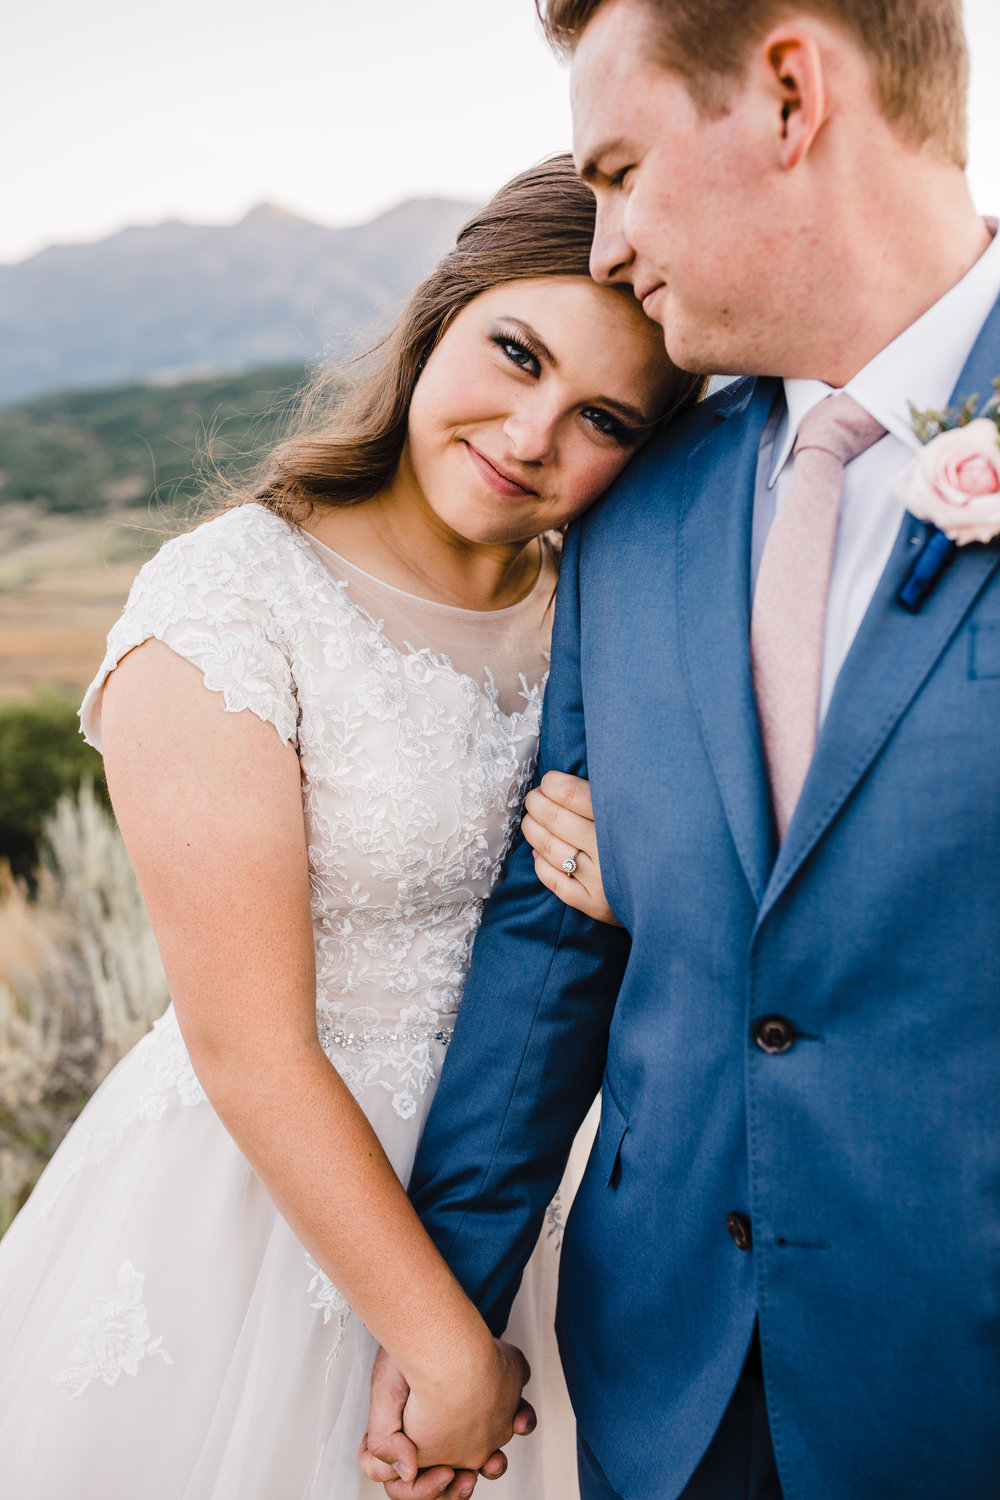 professional wedding photographer in logan utah bridals formals hugging smiling lace dress